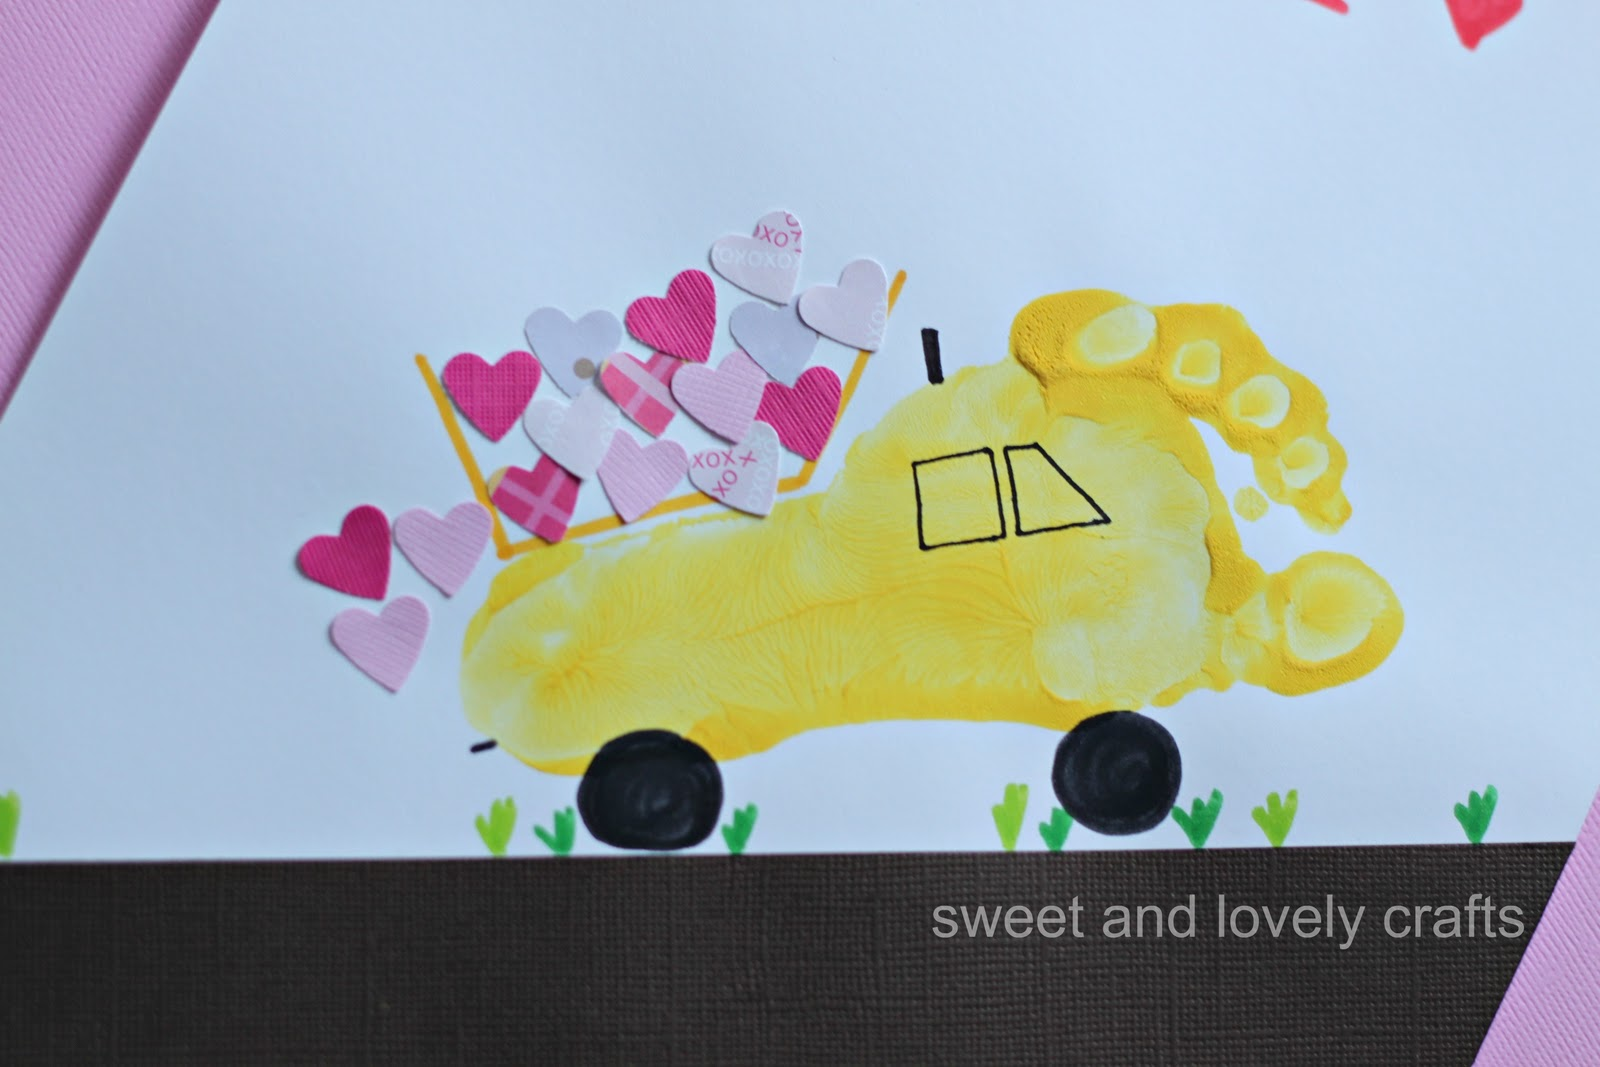 sweet and lovely crafts: footprint dump truck carrying love